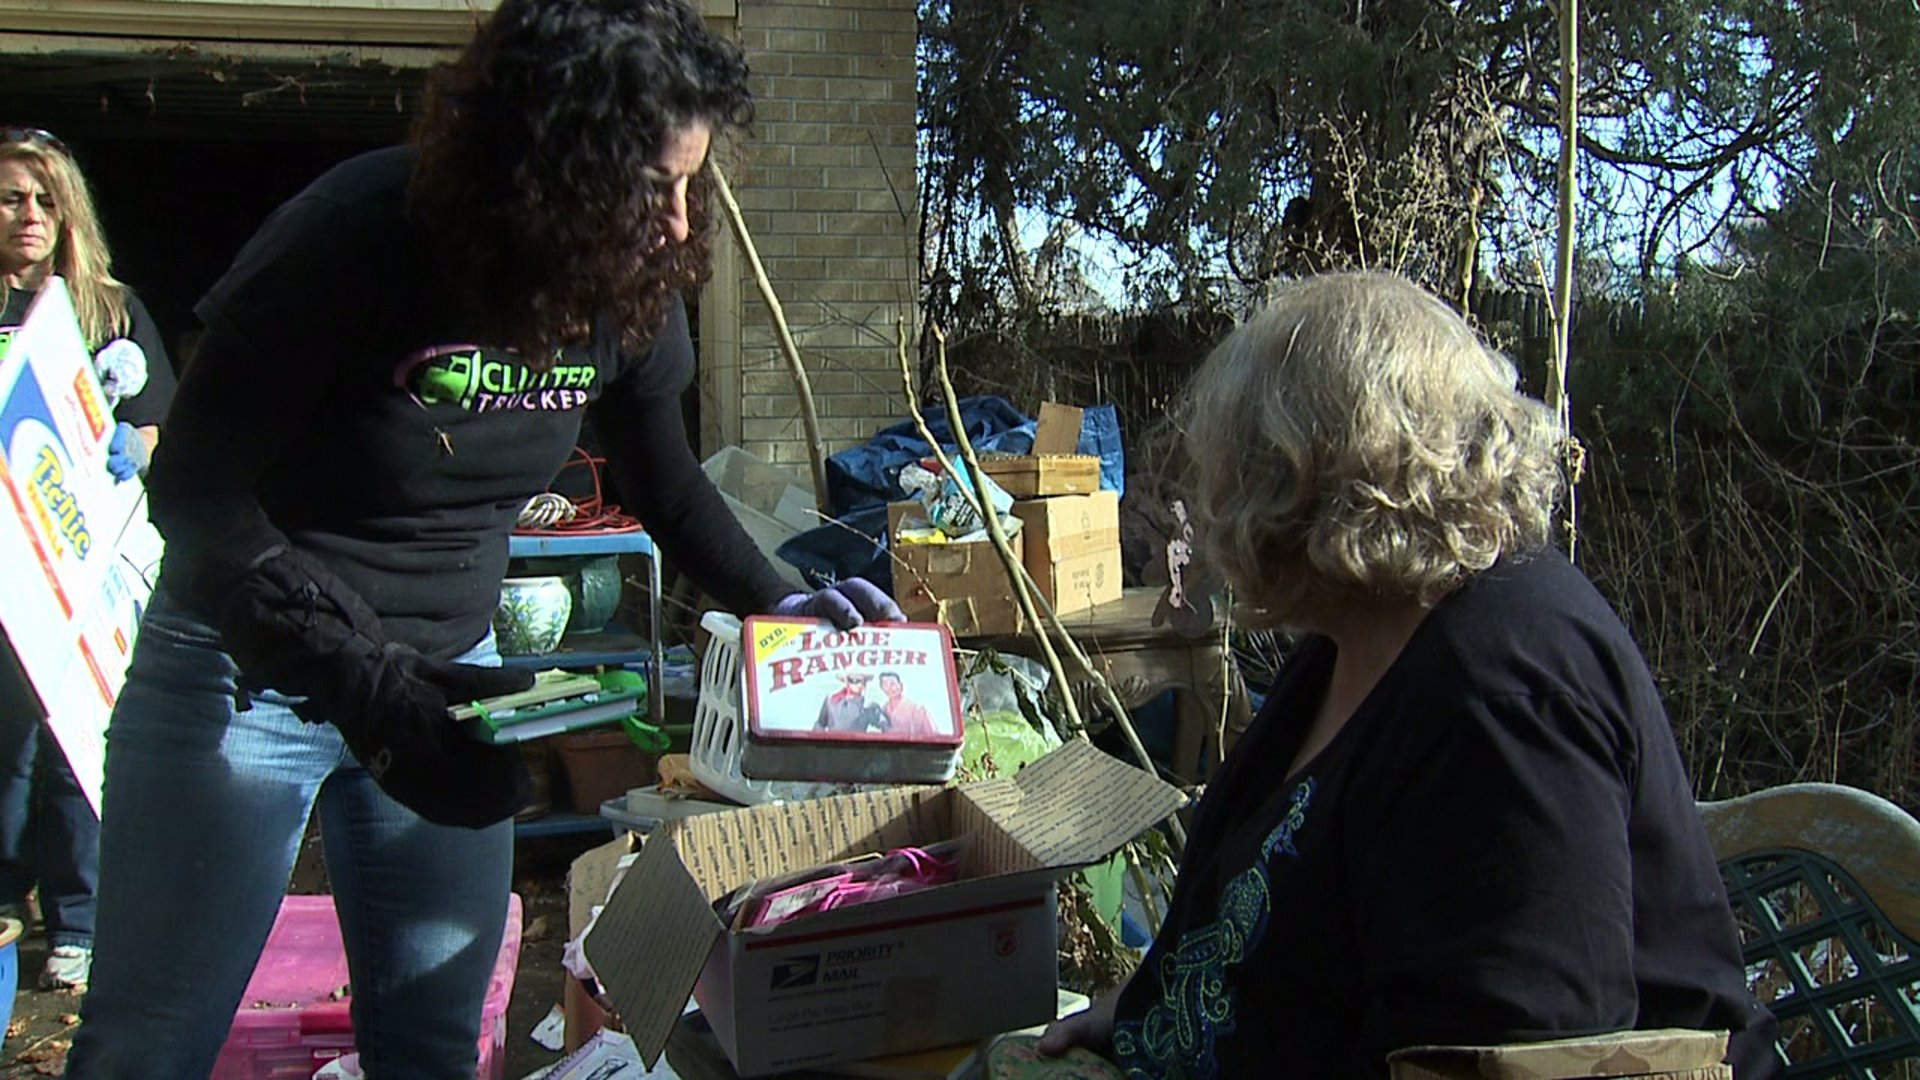 One woman works to overcome hoarding